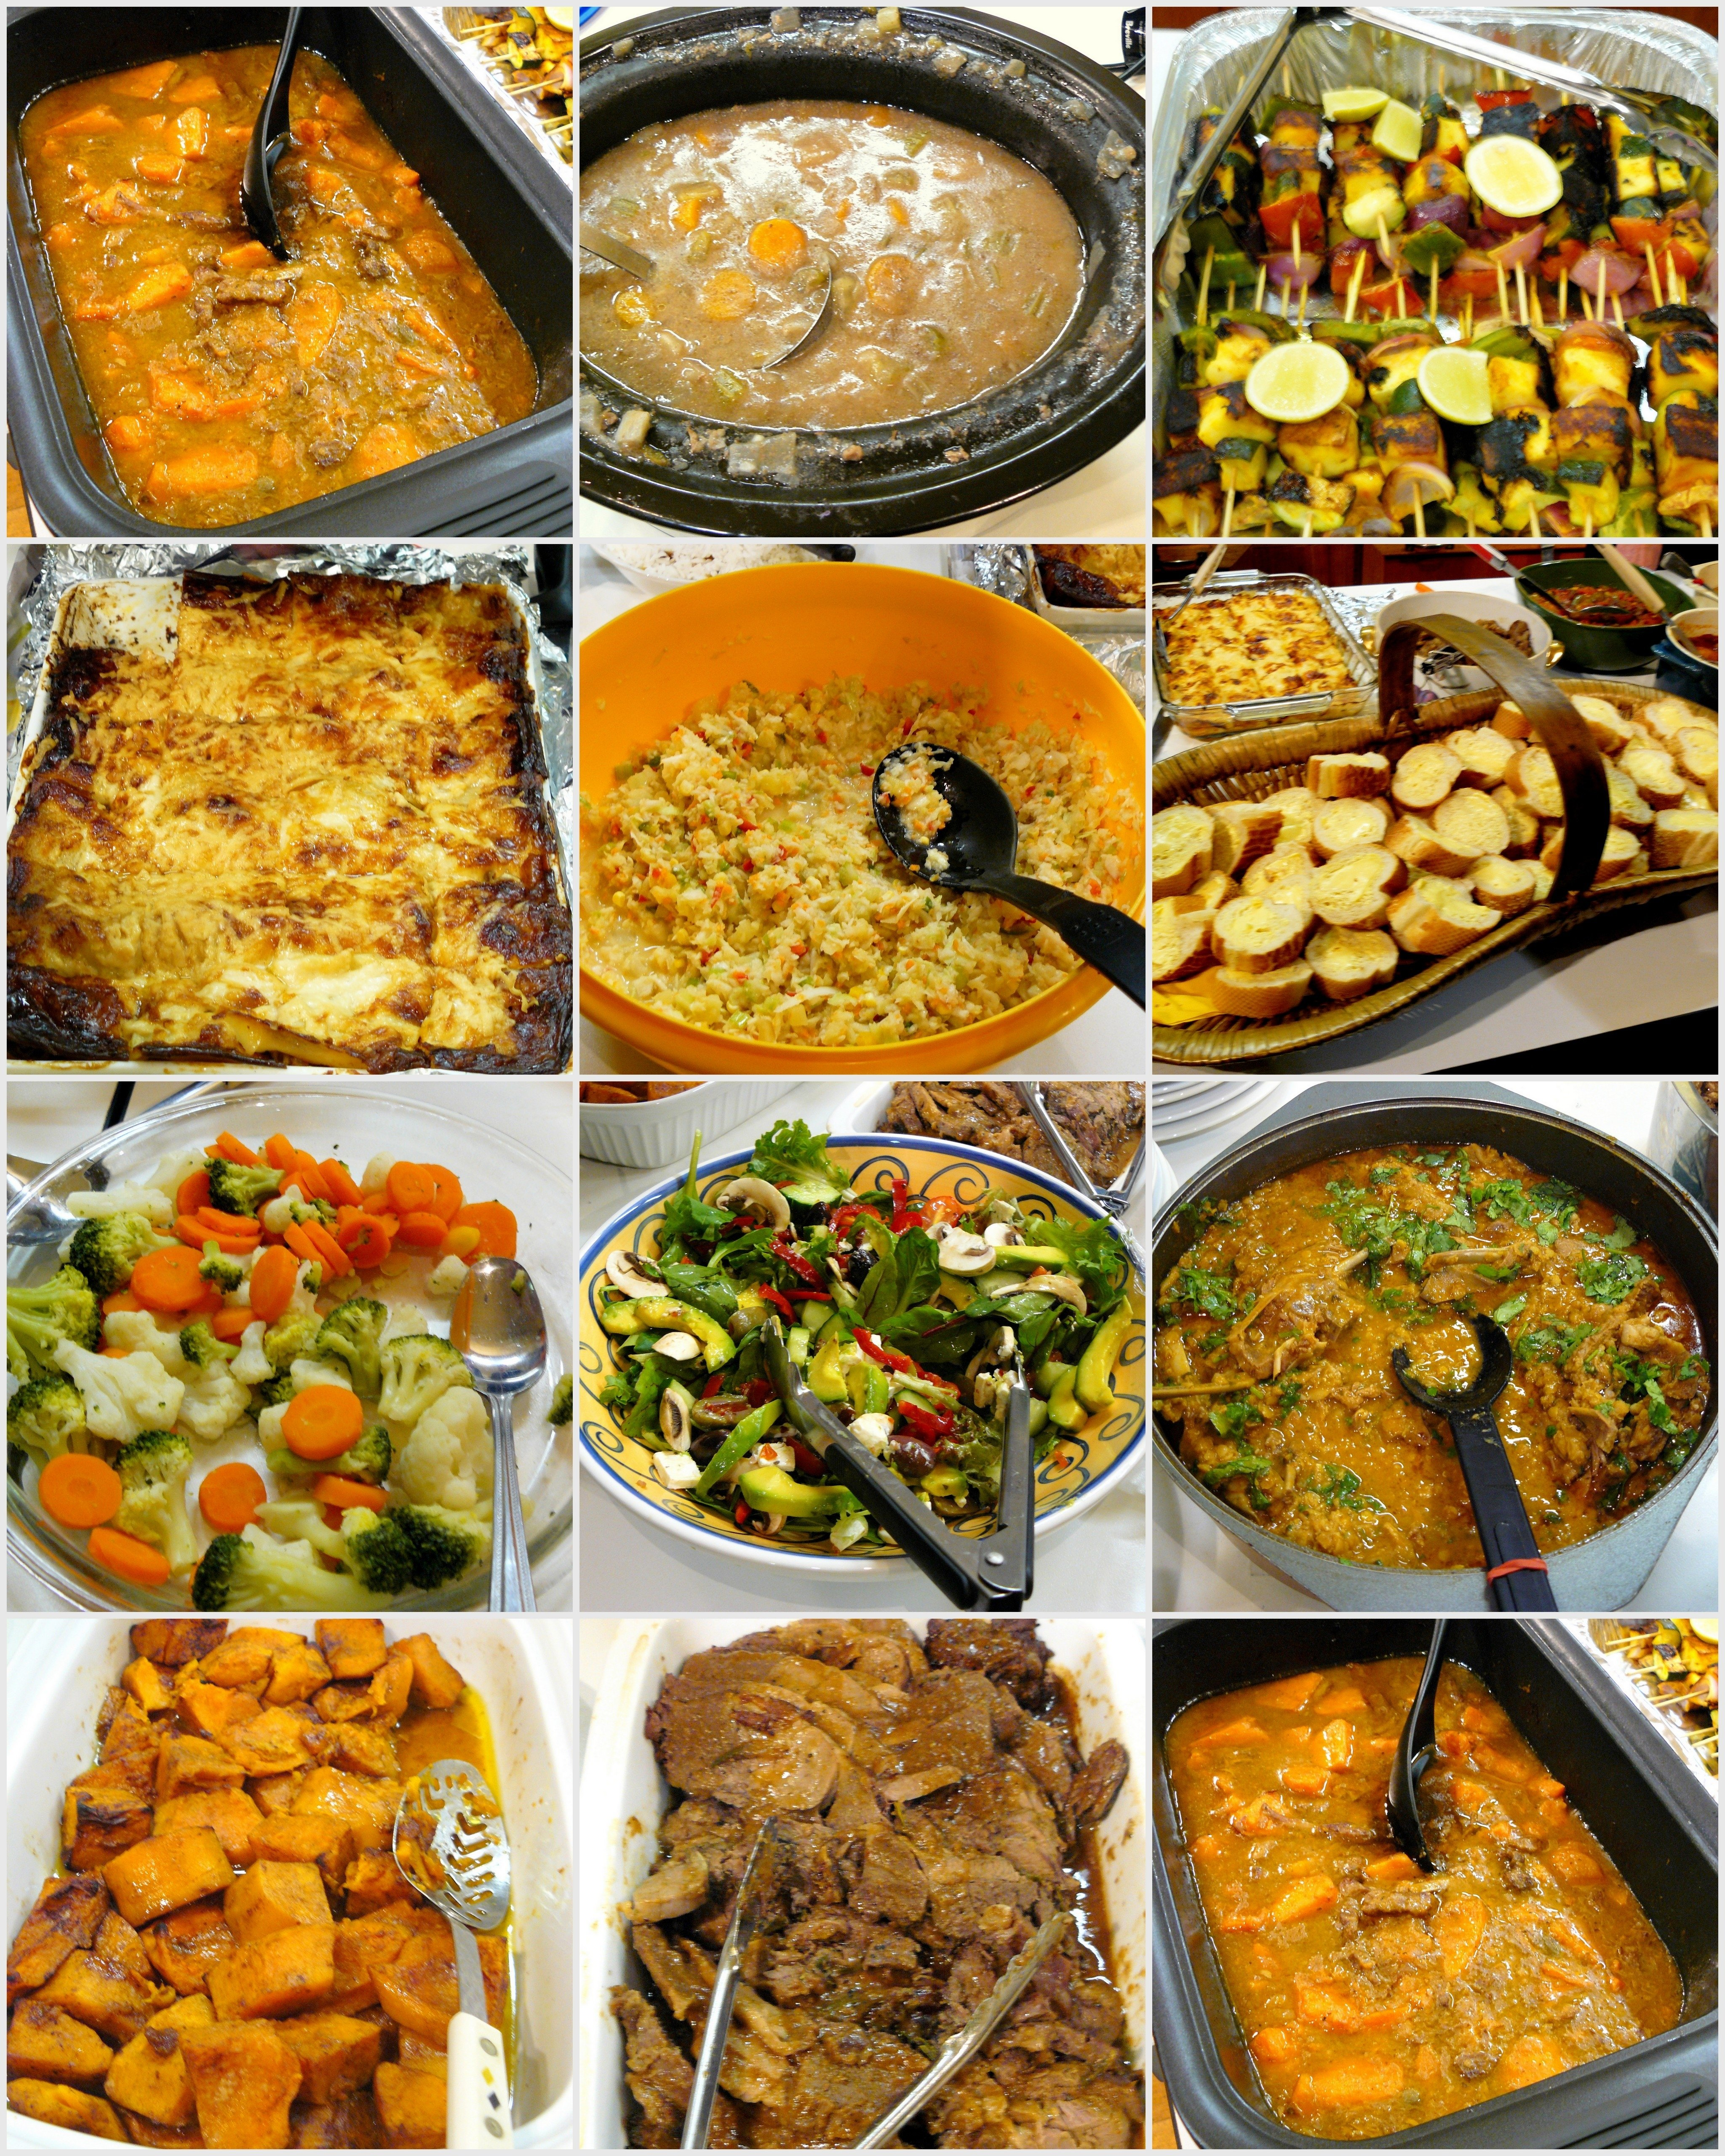 10 Cute Potluck Lunch Ideas For Work eggs the spice adventuress 2021